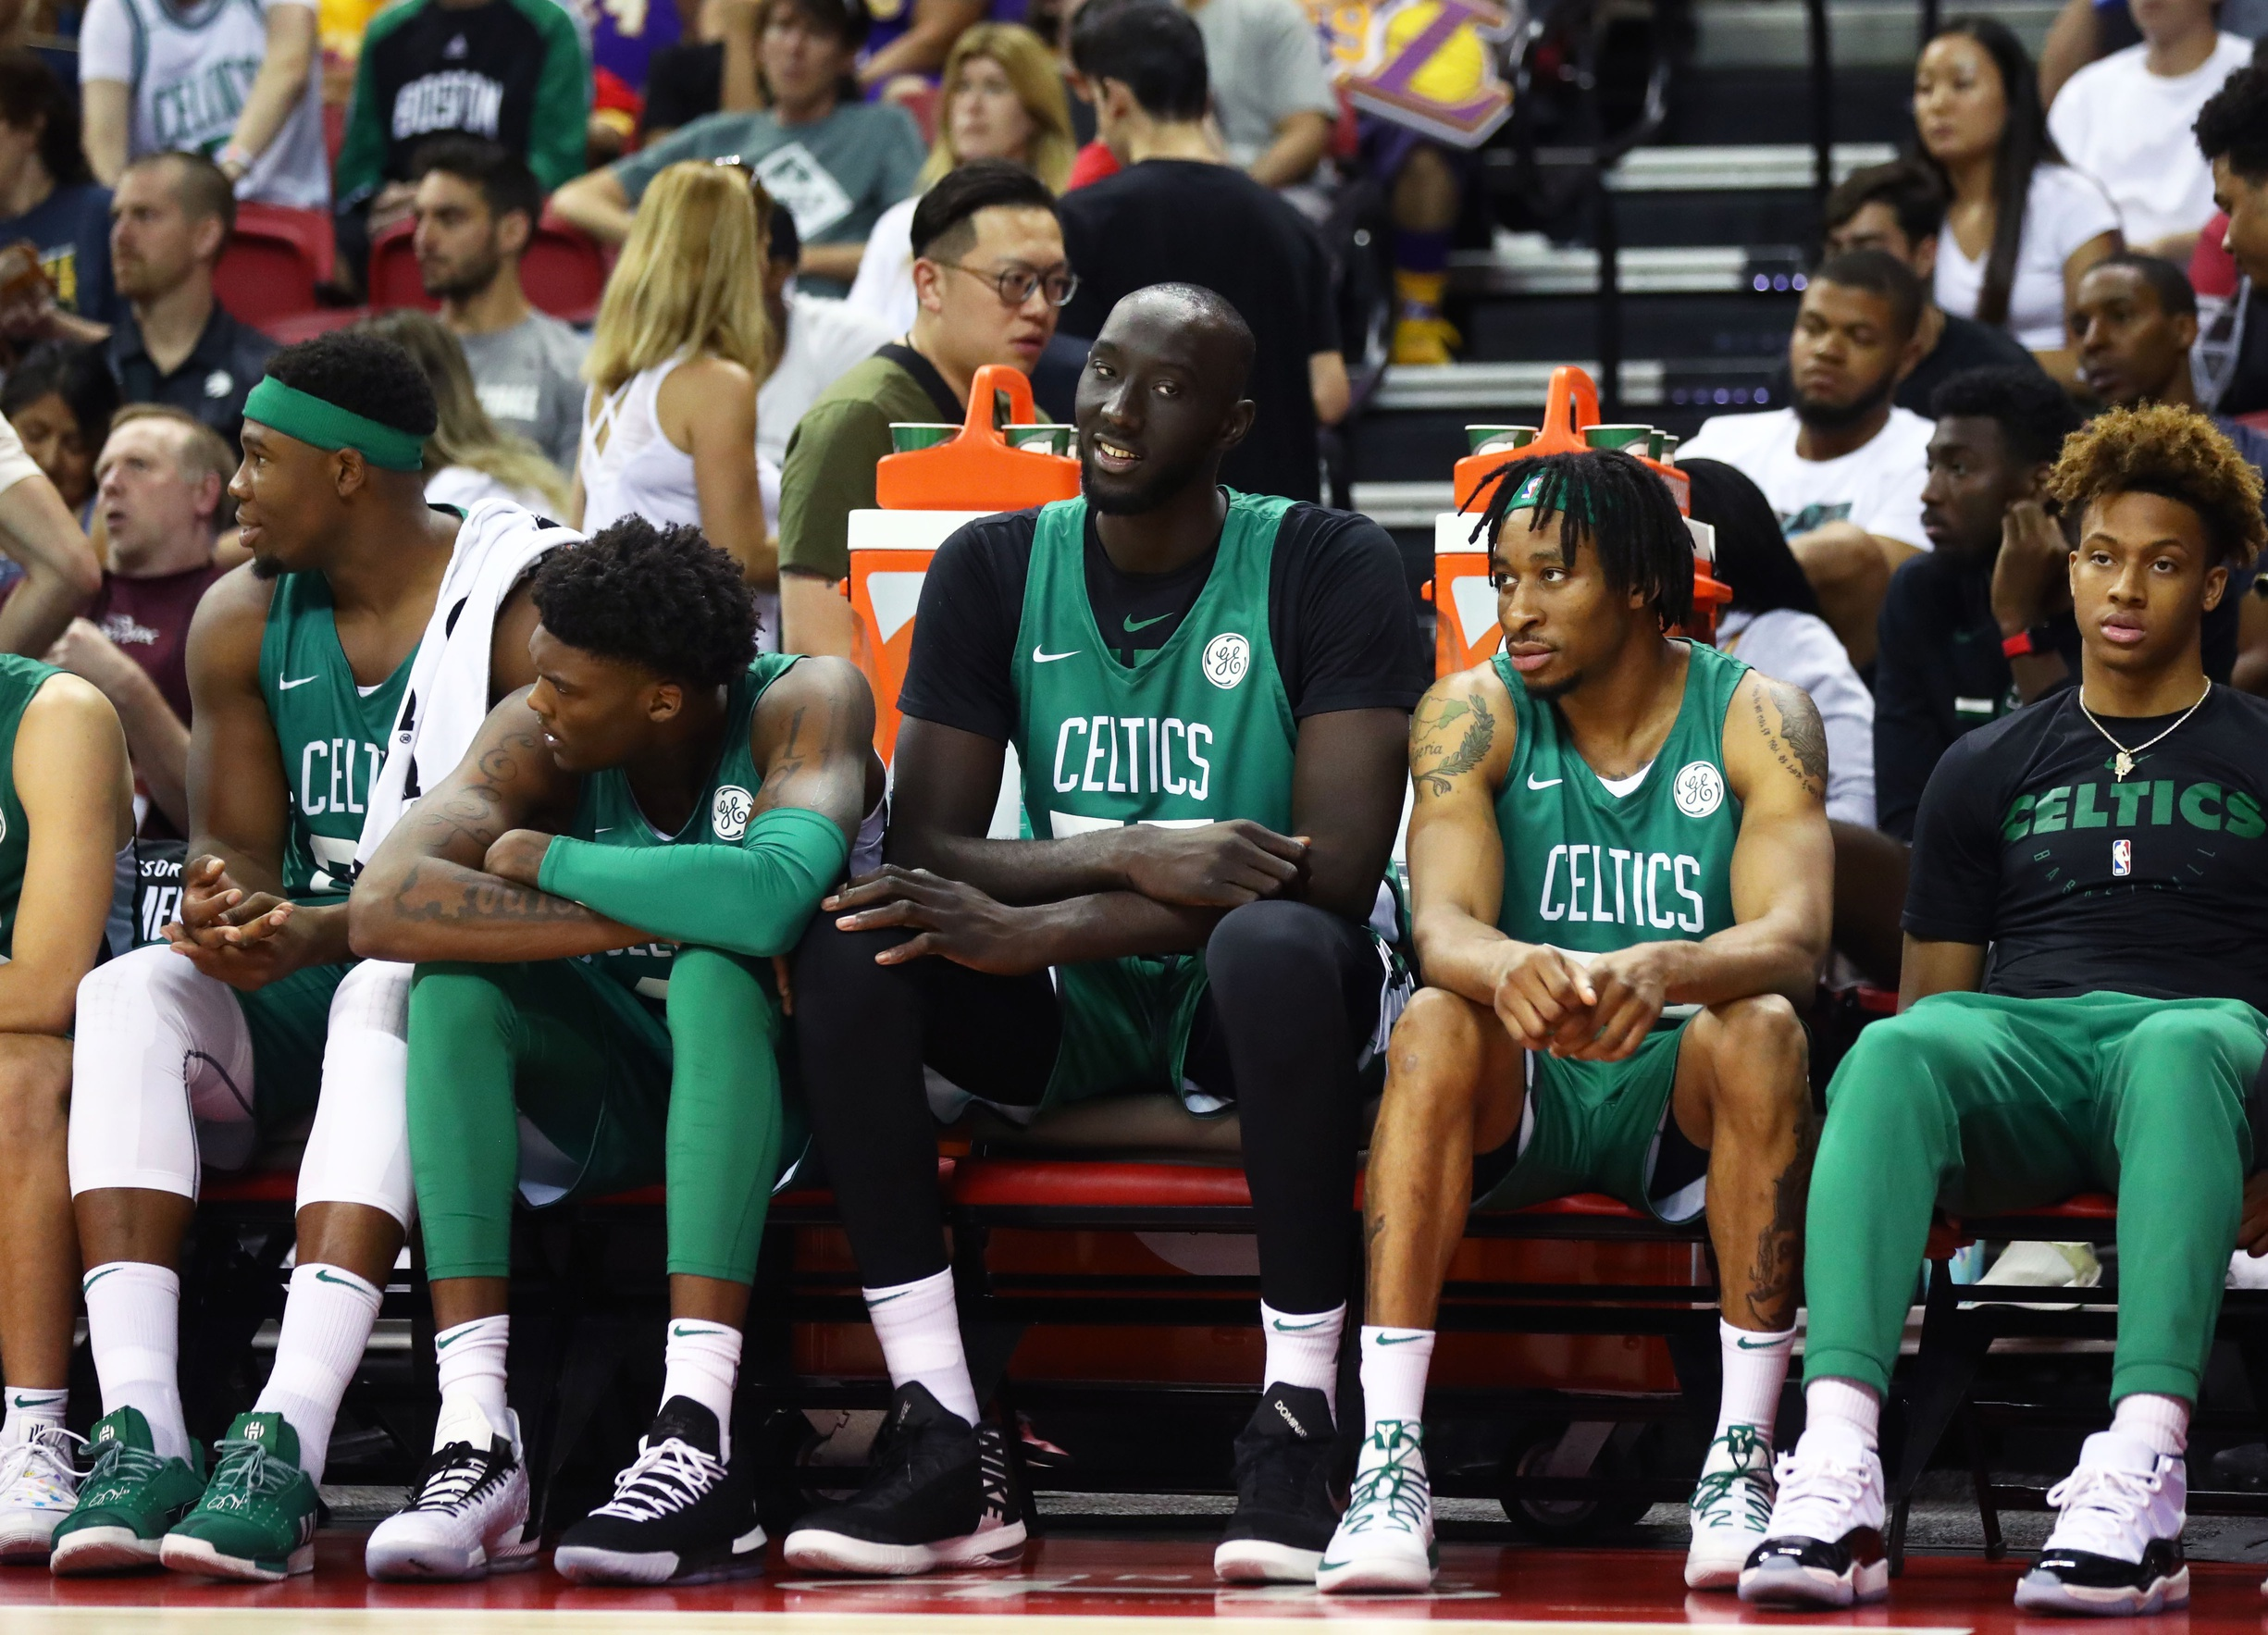 Your Morning Dump... Where the Celtics' Summer League fun ends